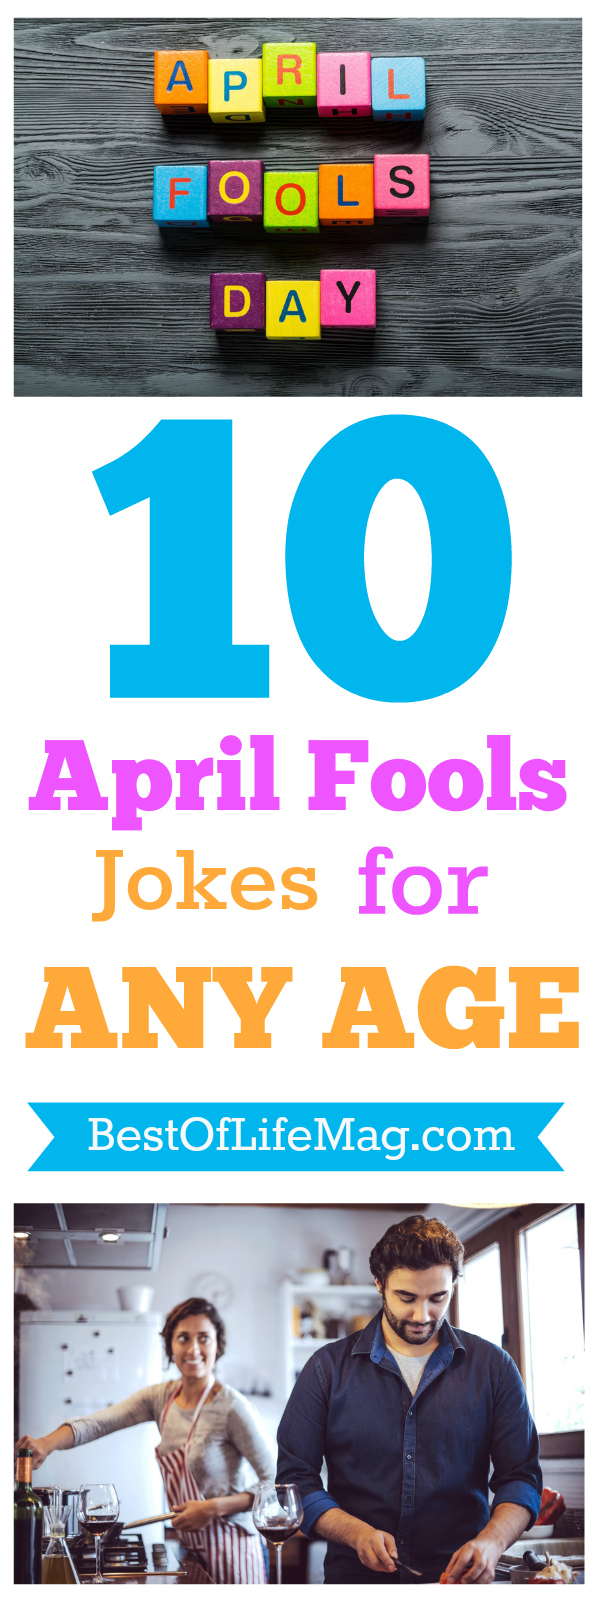 While April first is the day to get away with jokes and pranks, it's also the day when people of any age will be expecting them all. via @amybarseghian